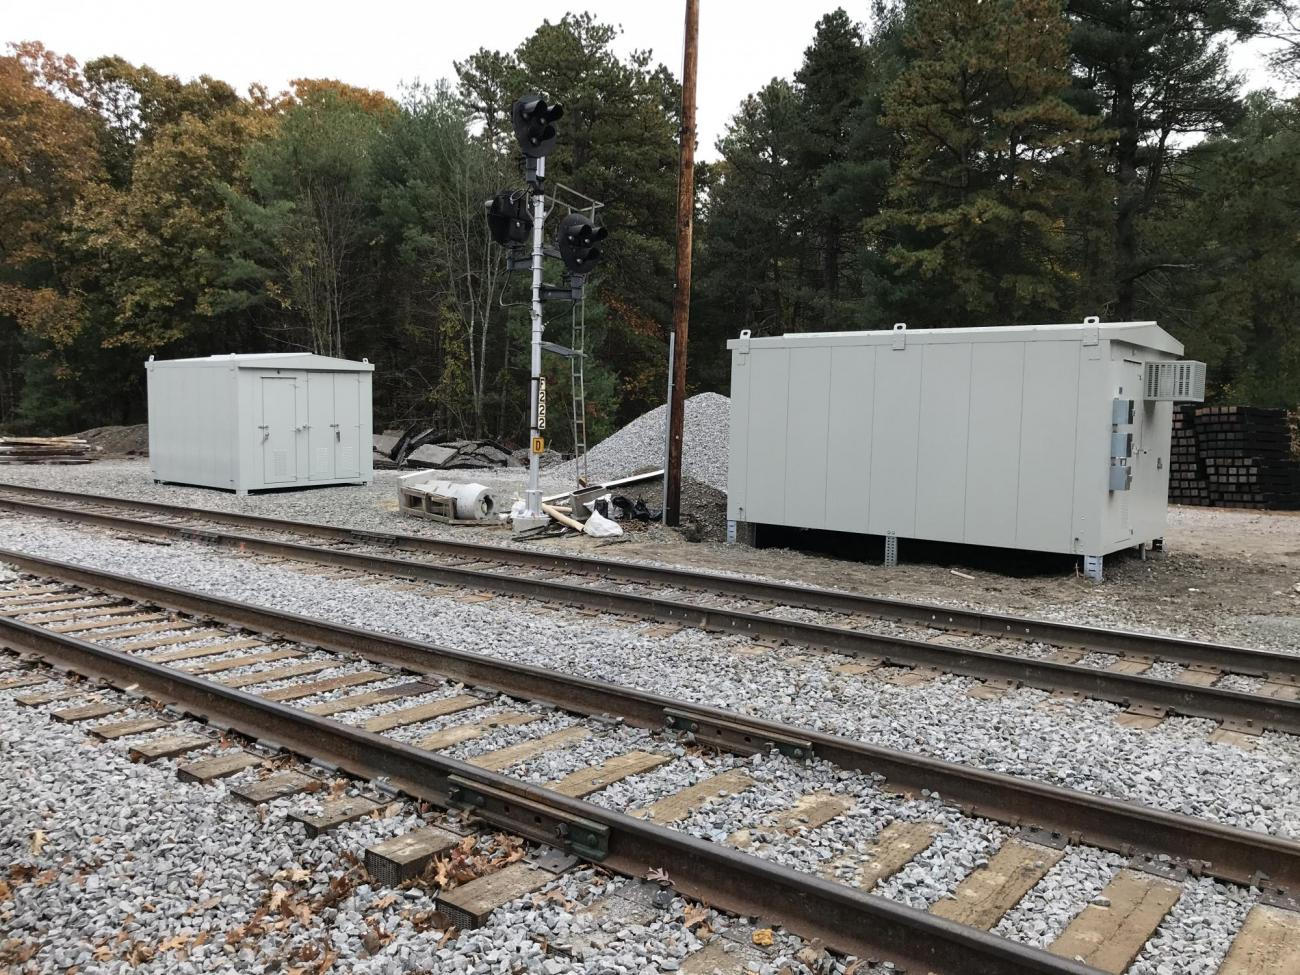 New signal houses were delivered before integrating the track into the system (October 2019)